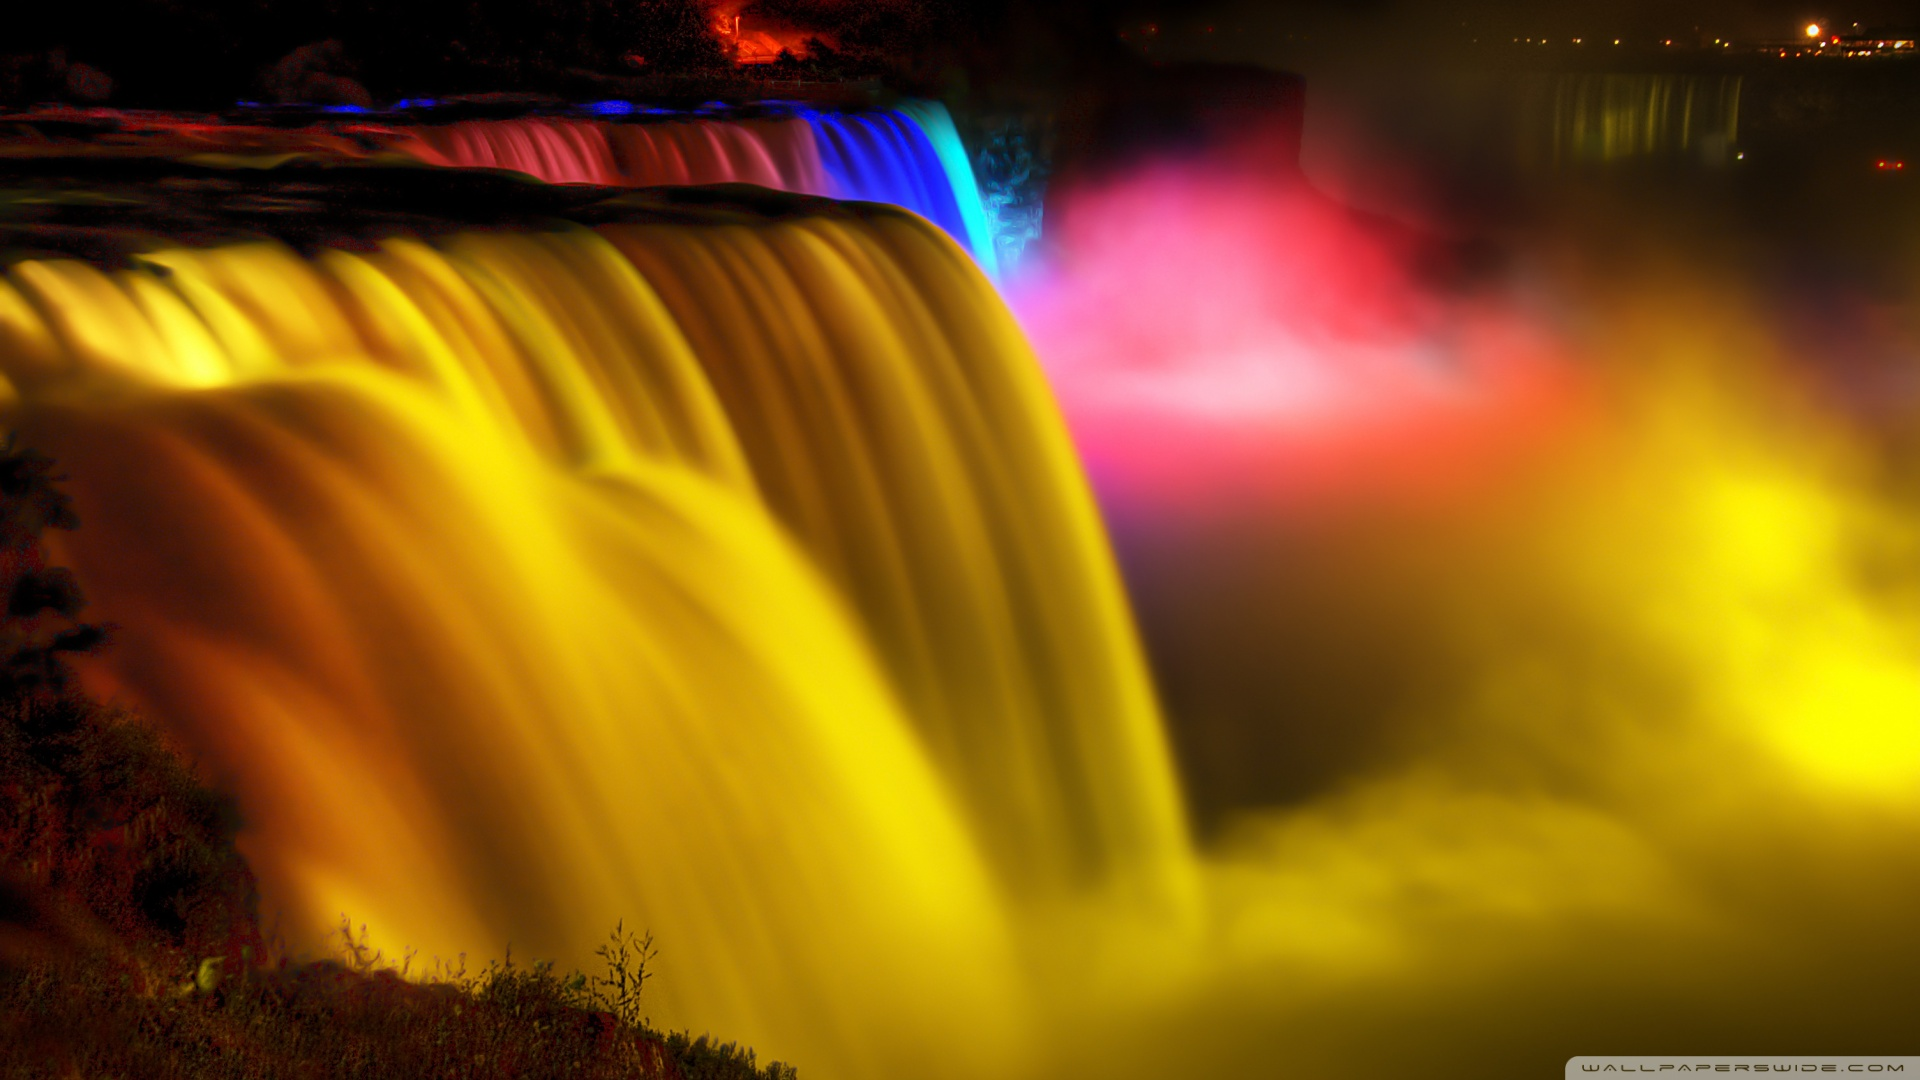 Niagara Falls Night-view - Most Beautiful Waterfall Wallpapers for Desktop Background